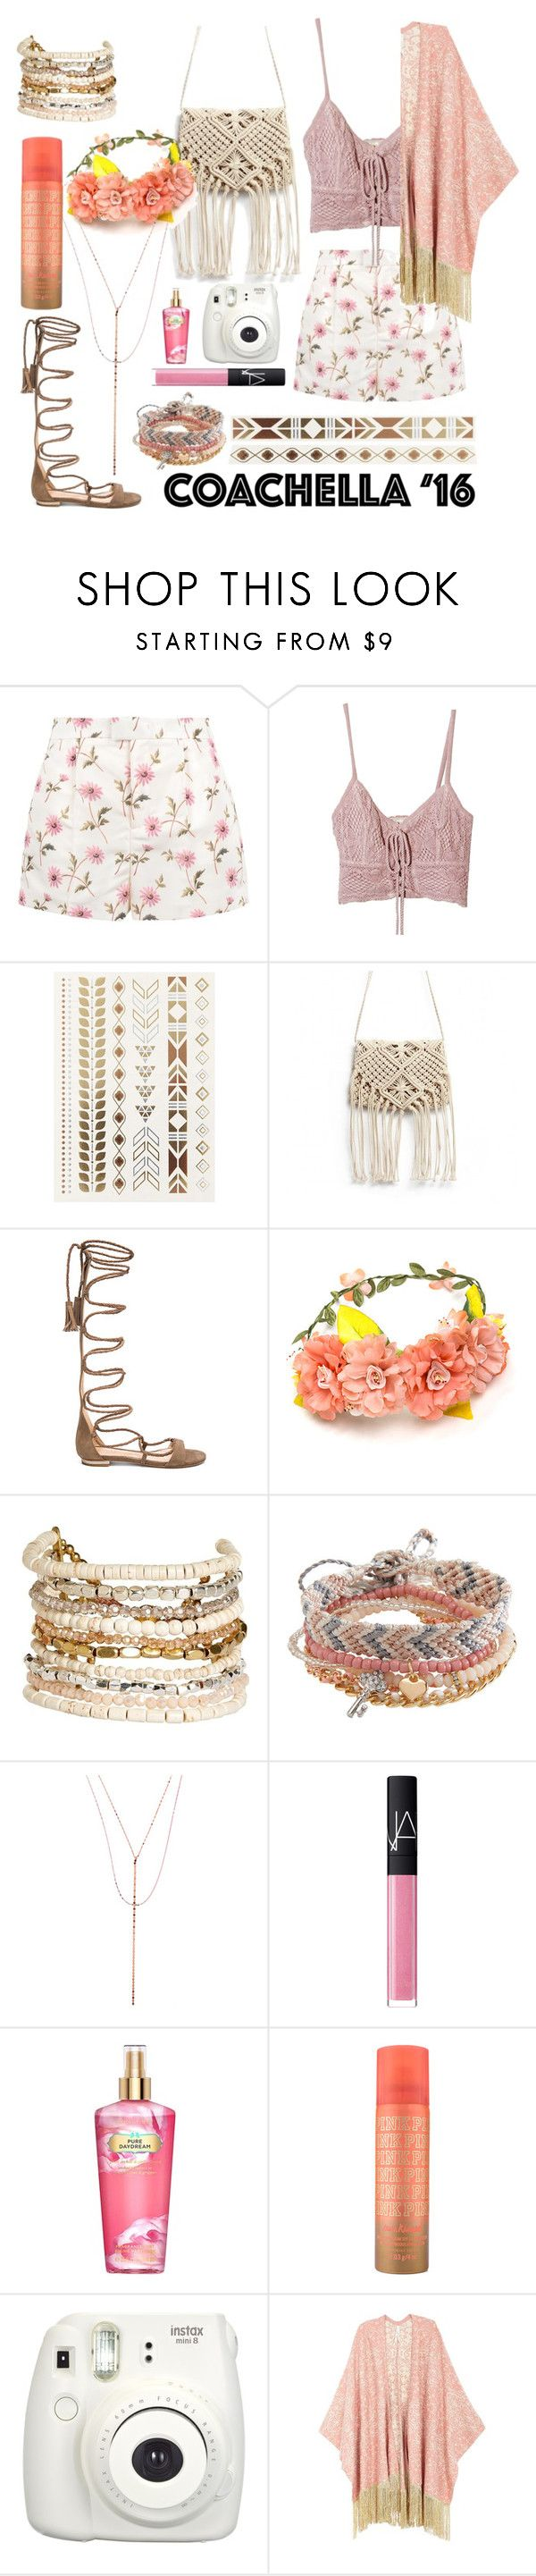 """""""Untitled #78"""" by xenalevina ❤ liked on Polyvore featuring RED Valentino, Jens Pirate Booty, Topshop, Schutz, Panacea, Aéropostale, Lana, NARS Cosmetics, Victoria's Secret and Melissa McCarthy Seven7"""